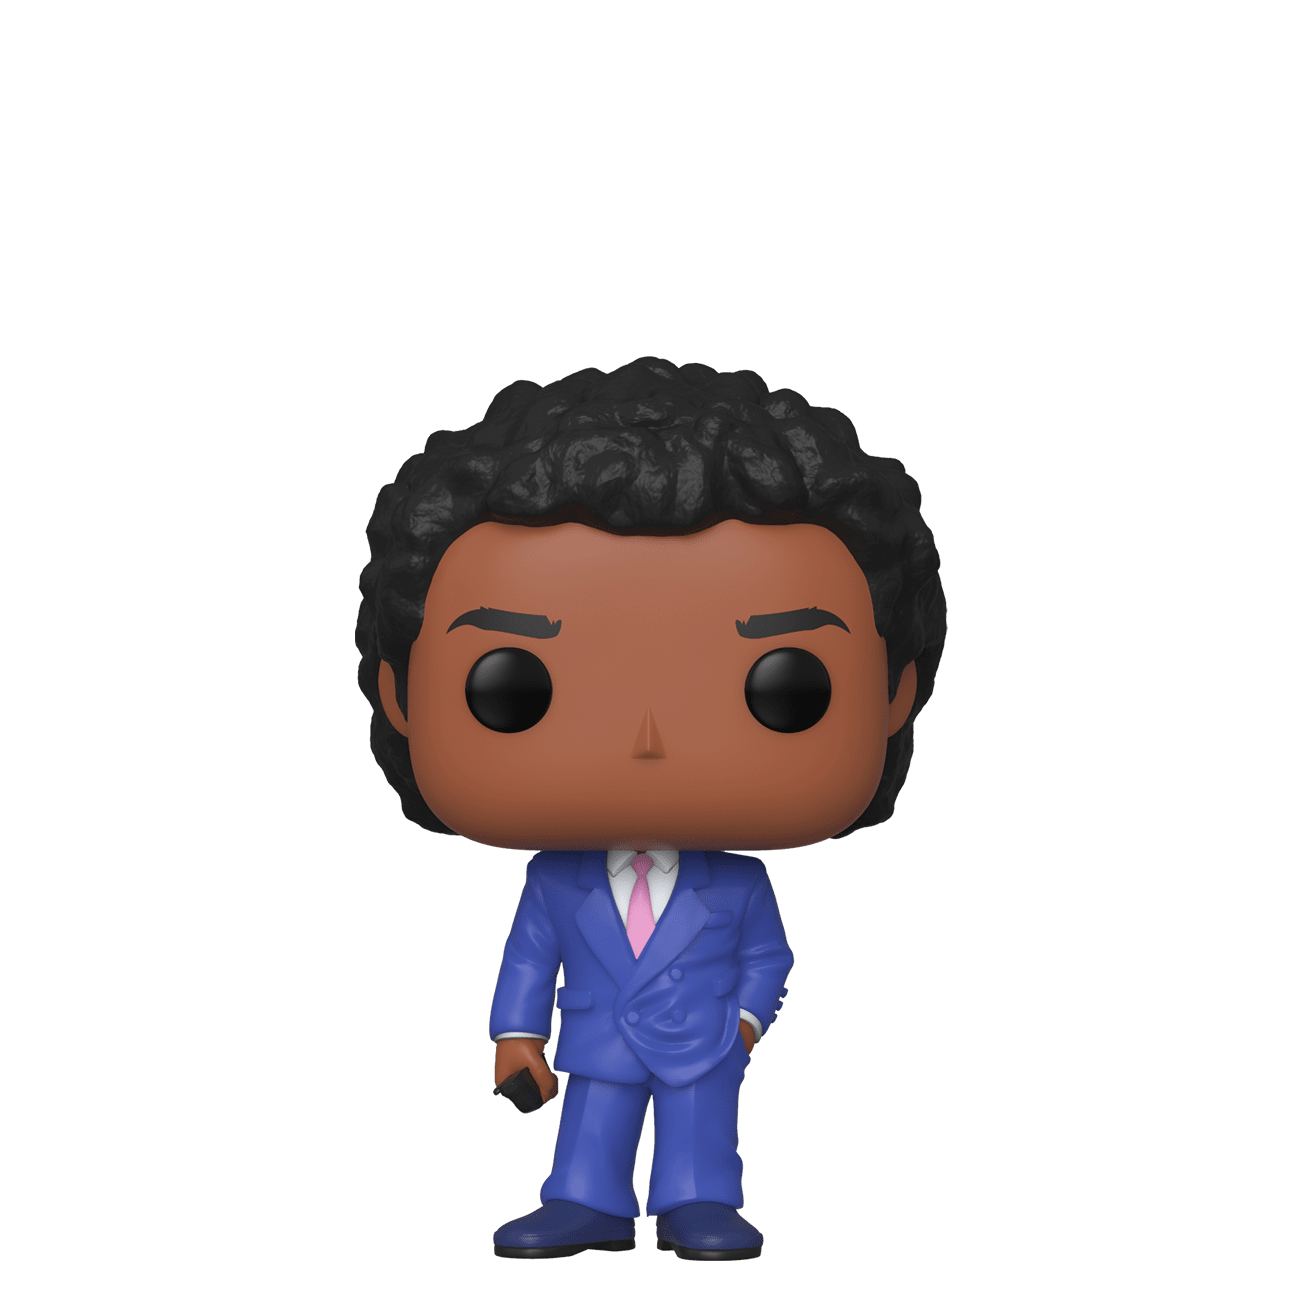 41052_MiamiVice_Tubbs_POP_GLAM_WEB-1656b6ee1e09b1c2db7925af773c7617.png